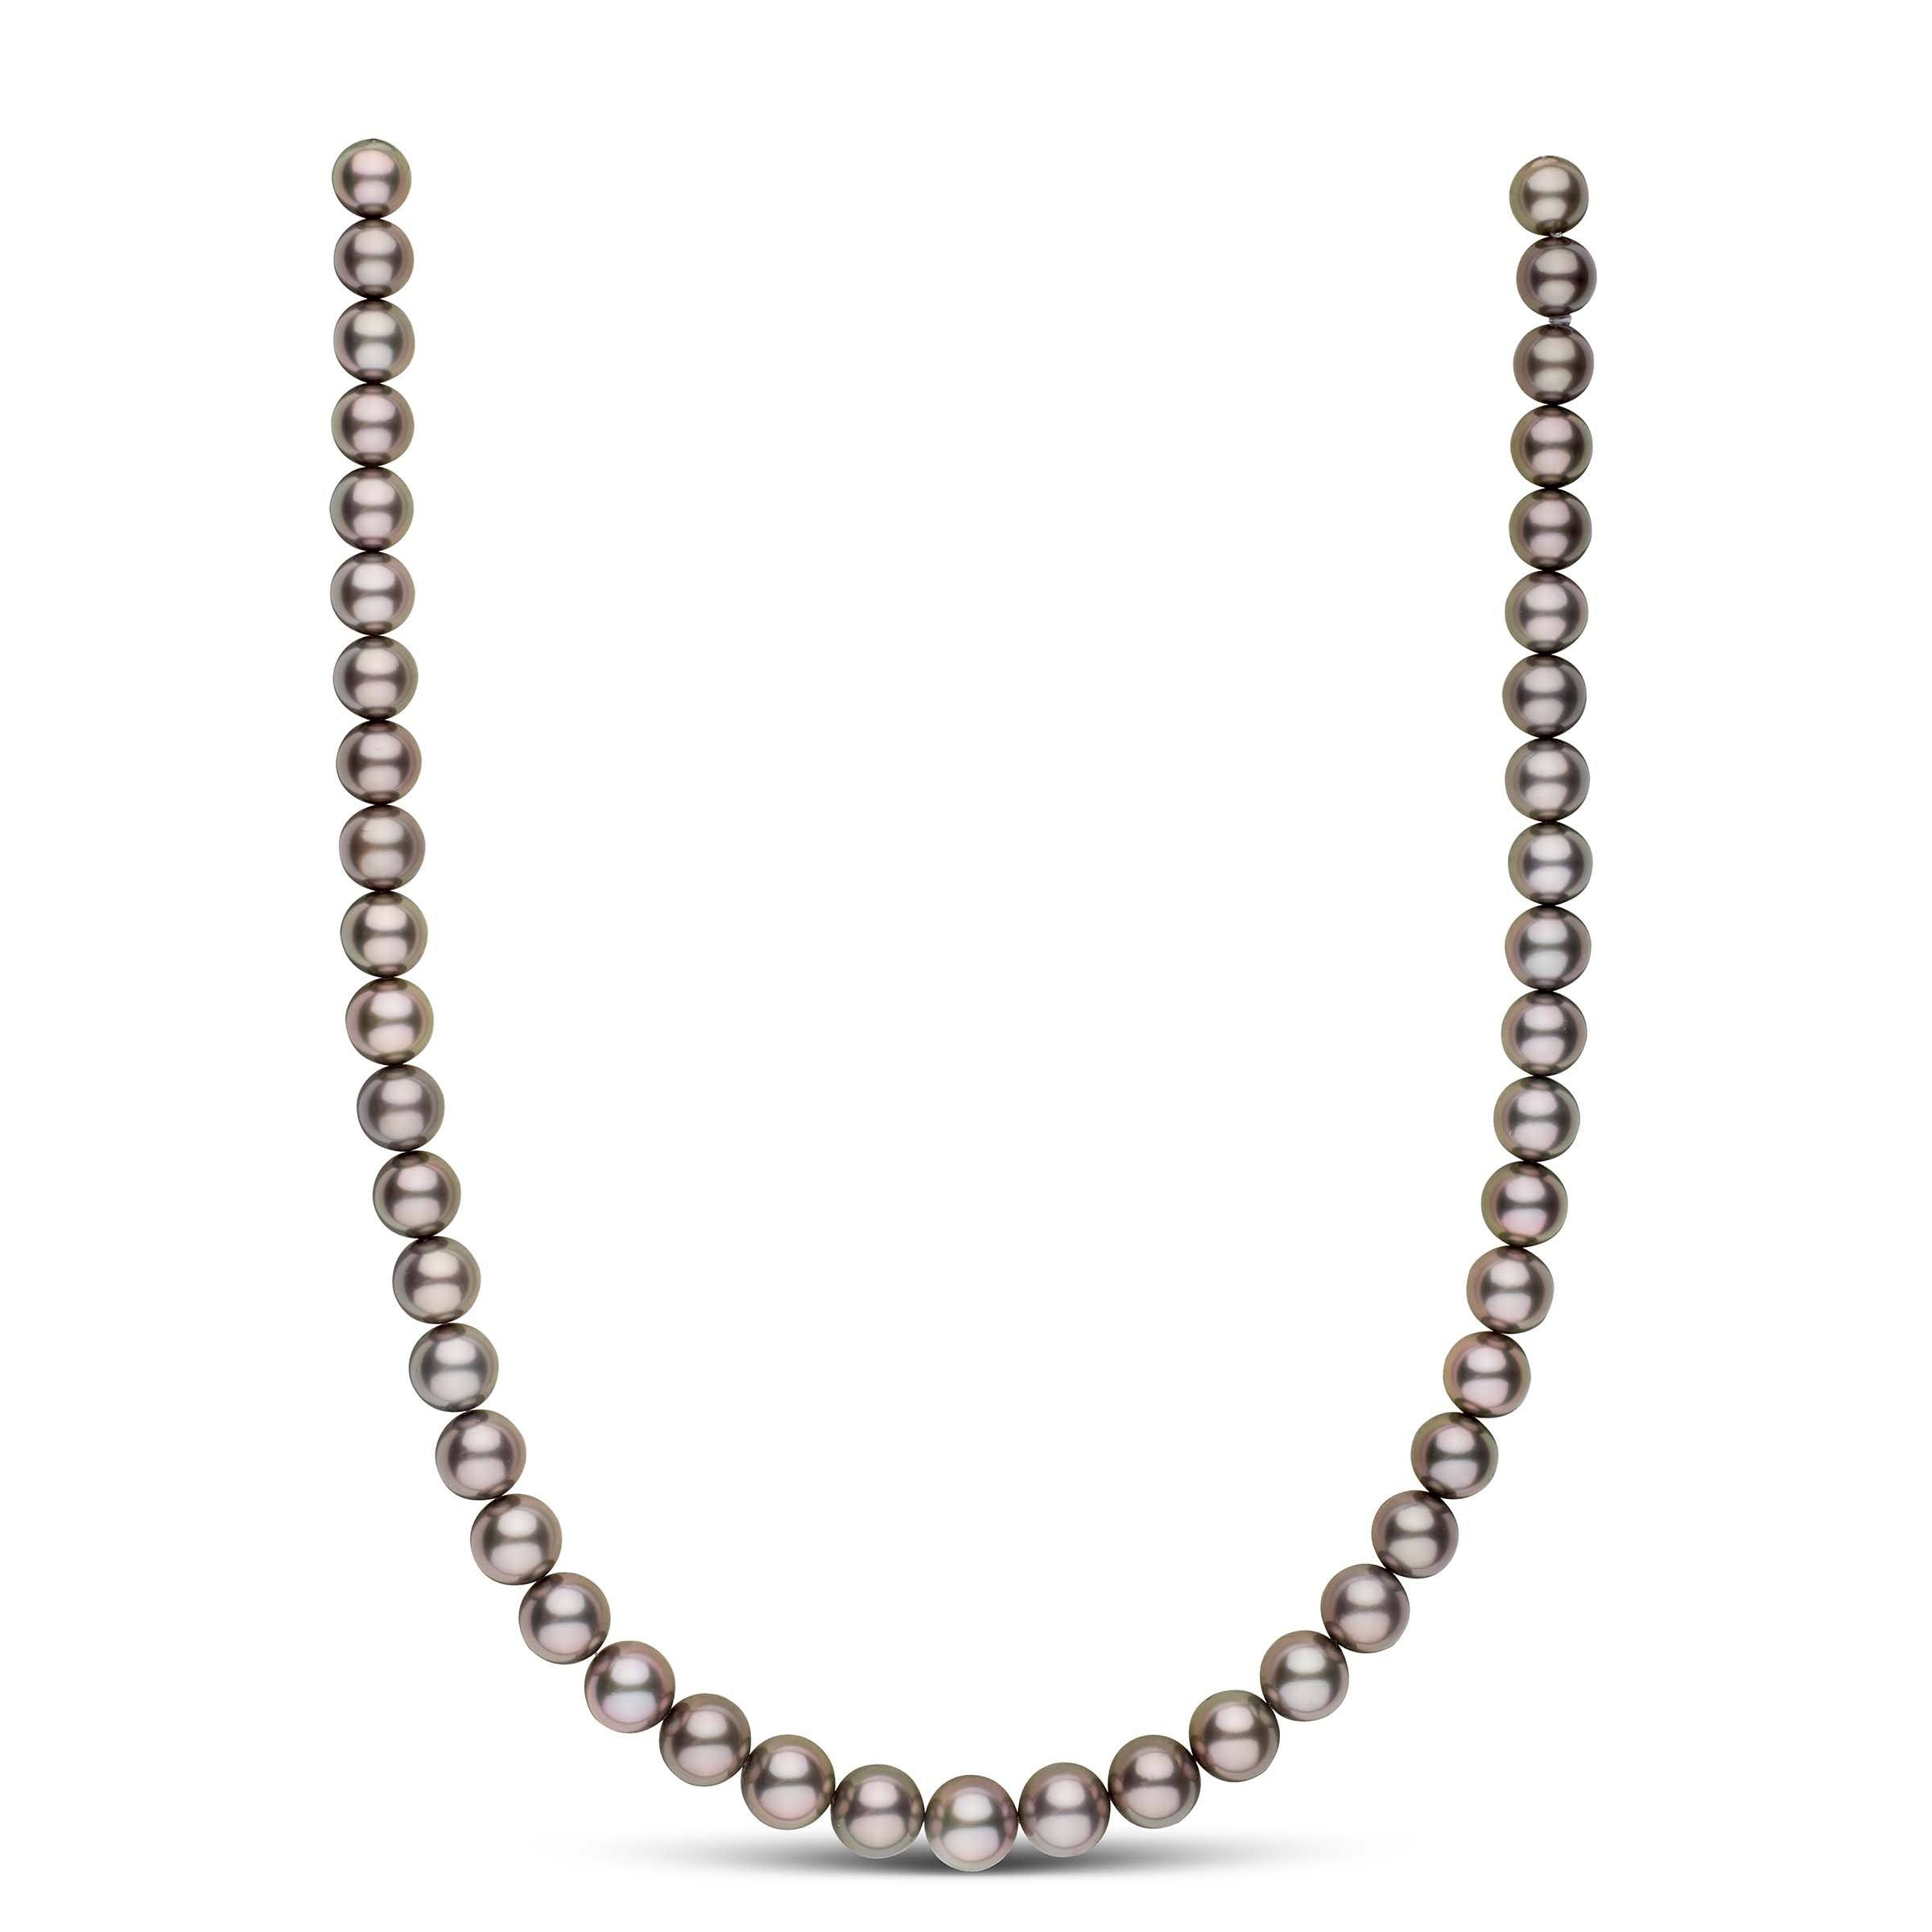 18-inch 8.2-9.9 mm AAA Round Tahitian Pearl Necklace